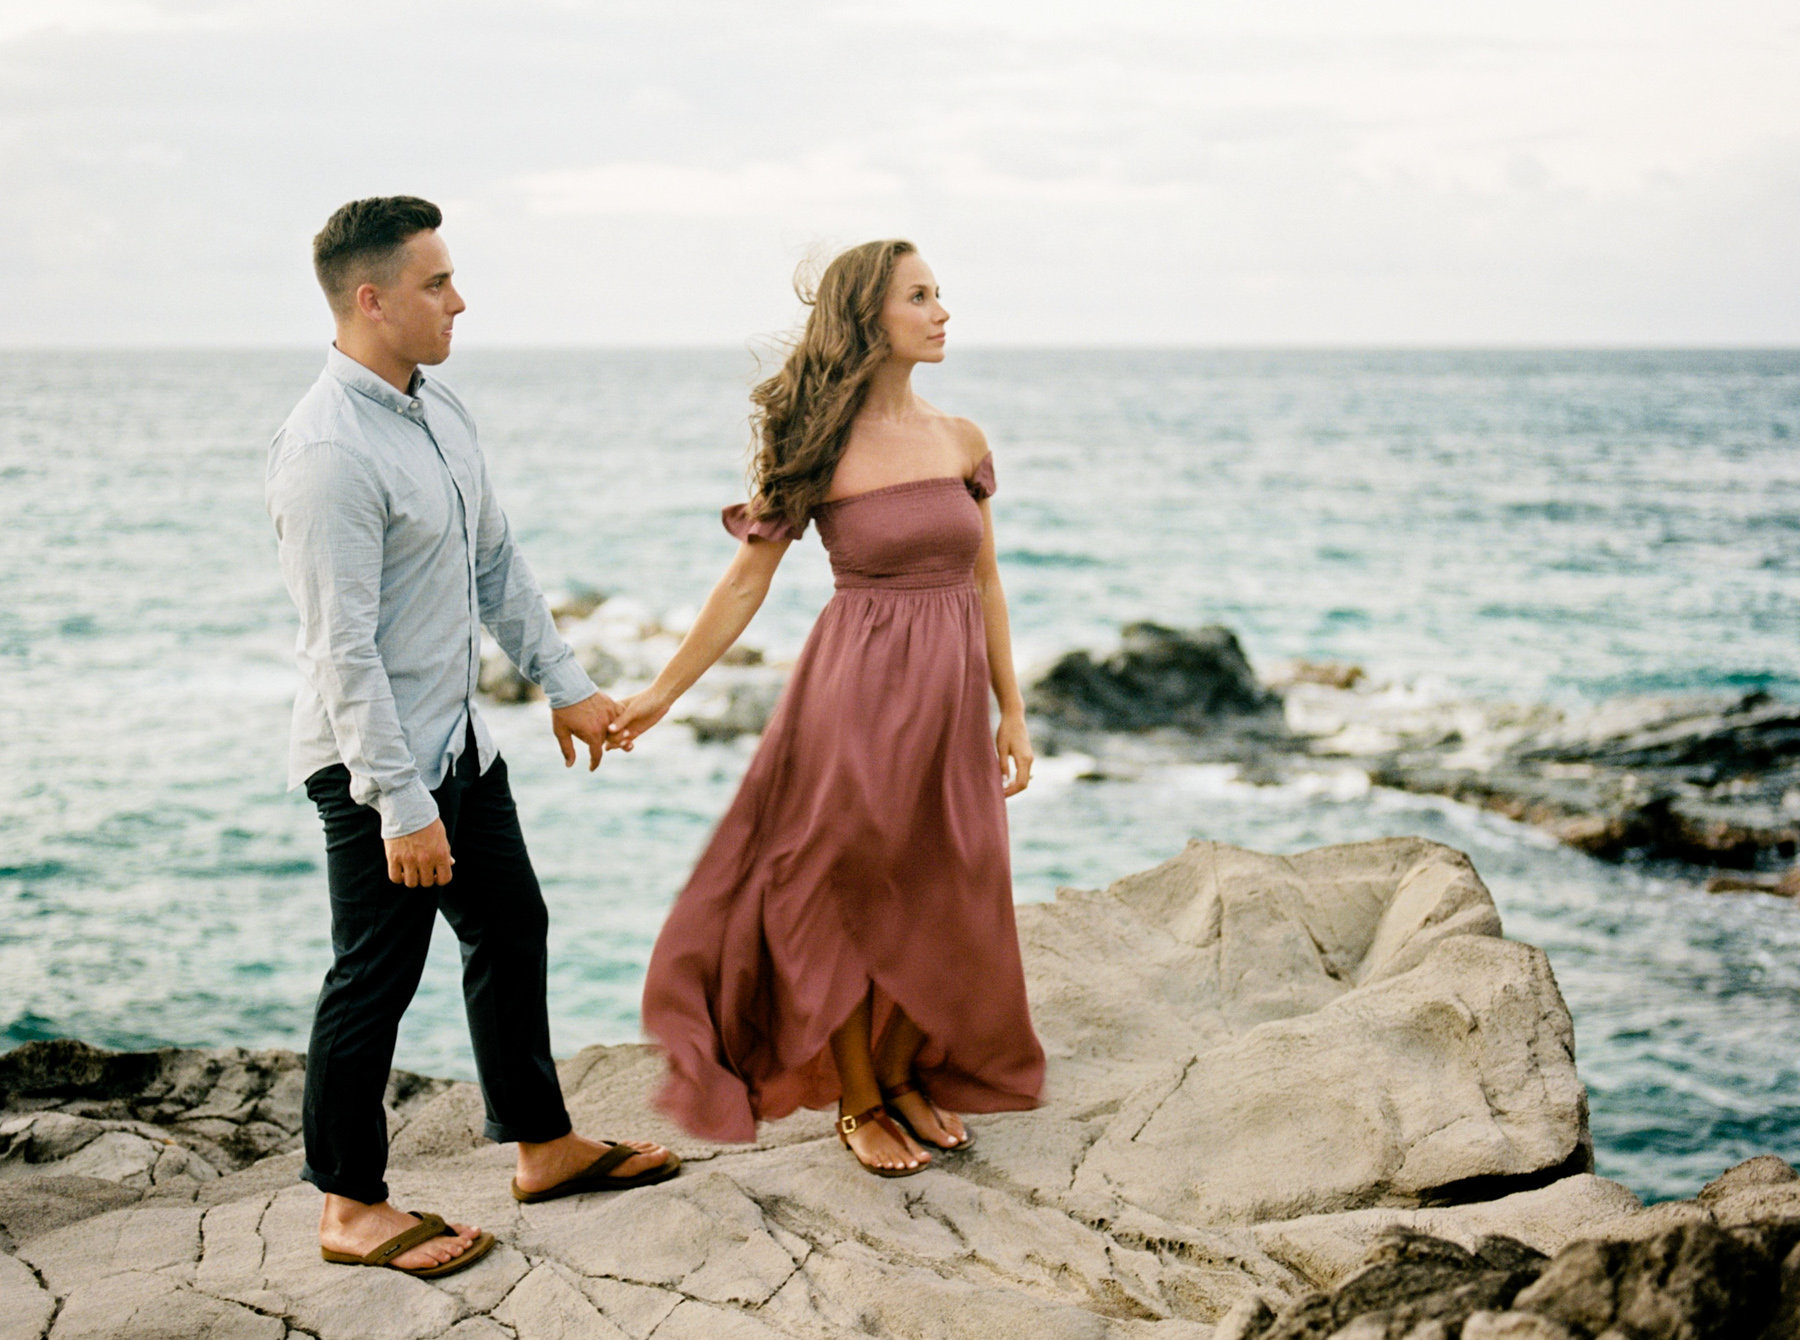 Maui Engagement Photos by Rebecca Arthurs | smelltheroses.com